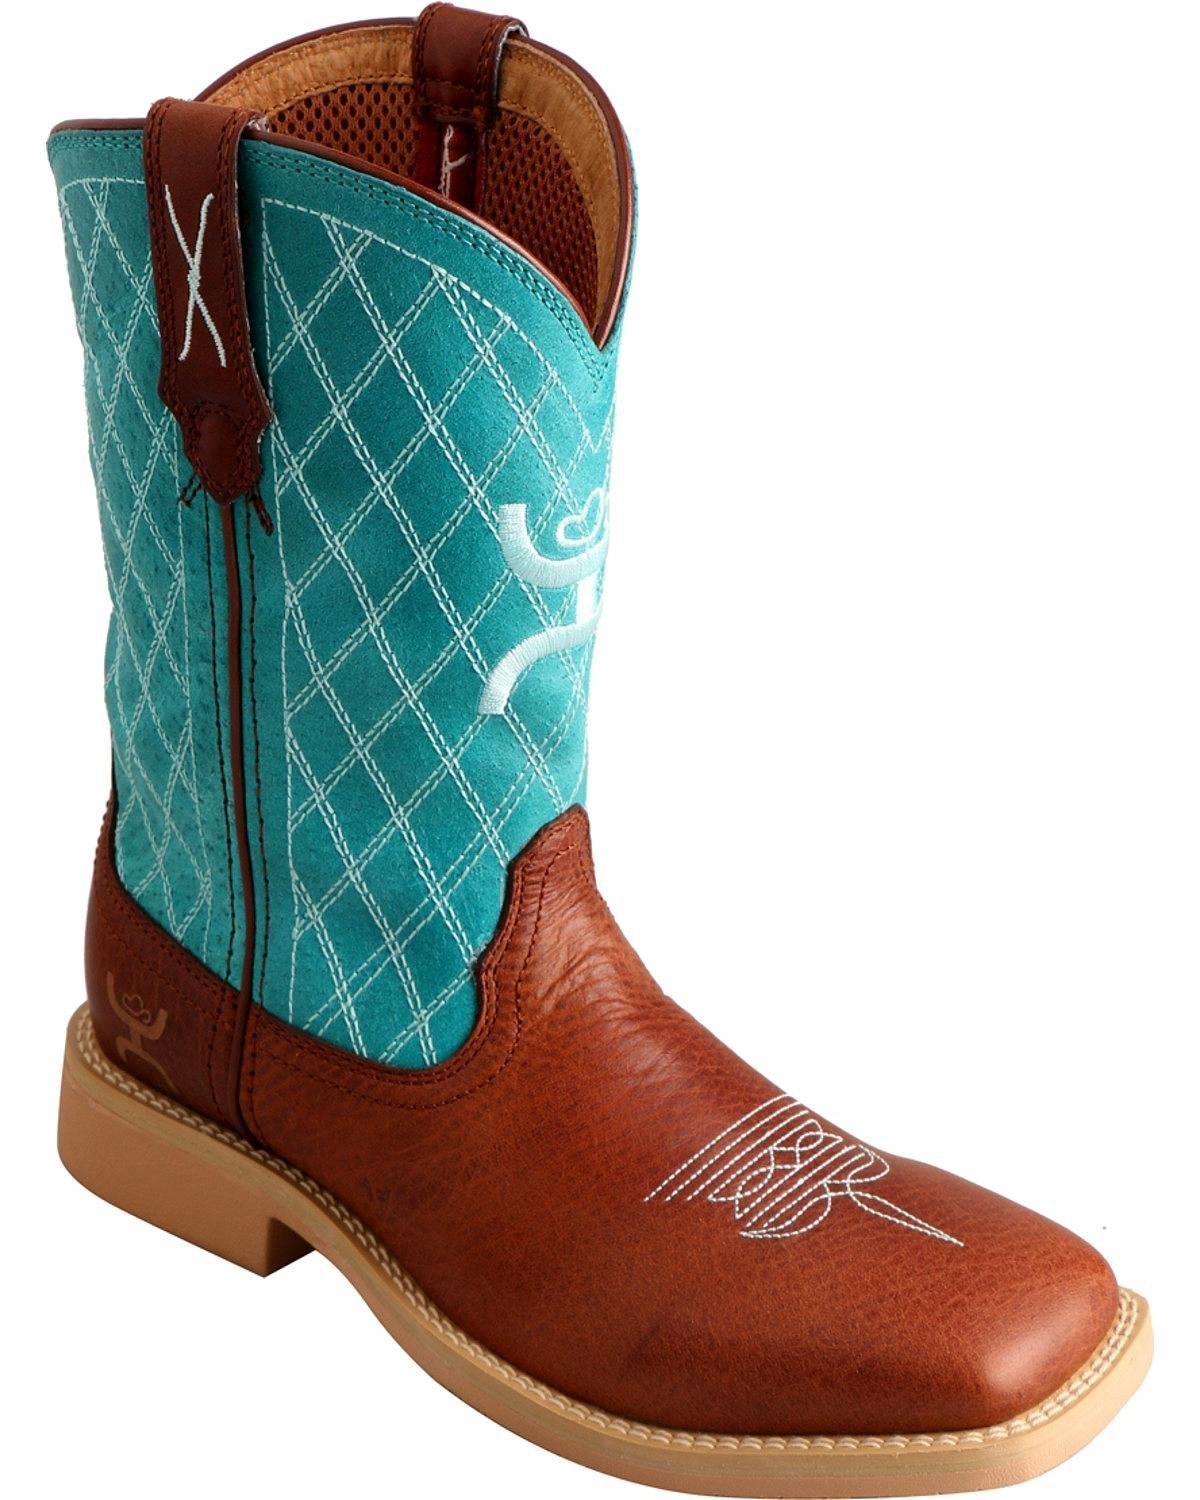 Twisted X Boys' Hooey Cowboy Boot Square Toe - Yhy0006 B01E4I9MMA 6 M US Big Kid|Cognac